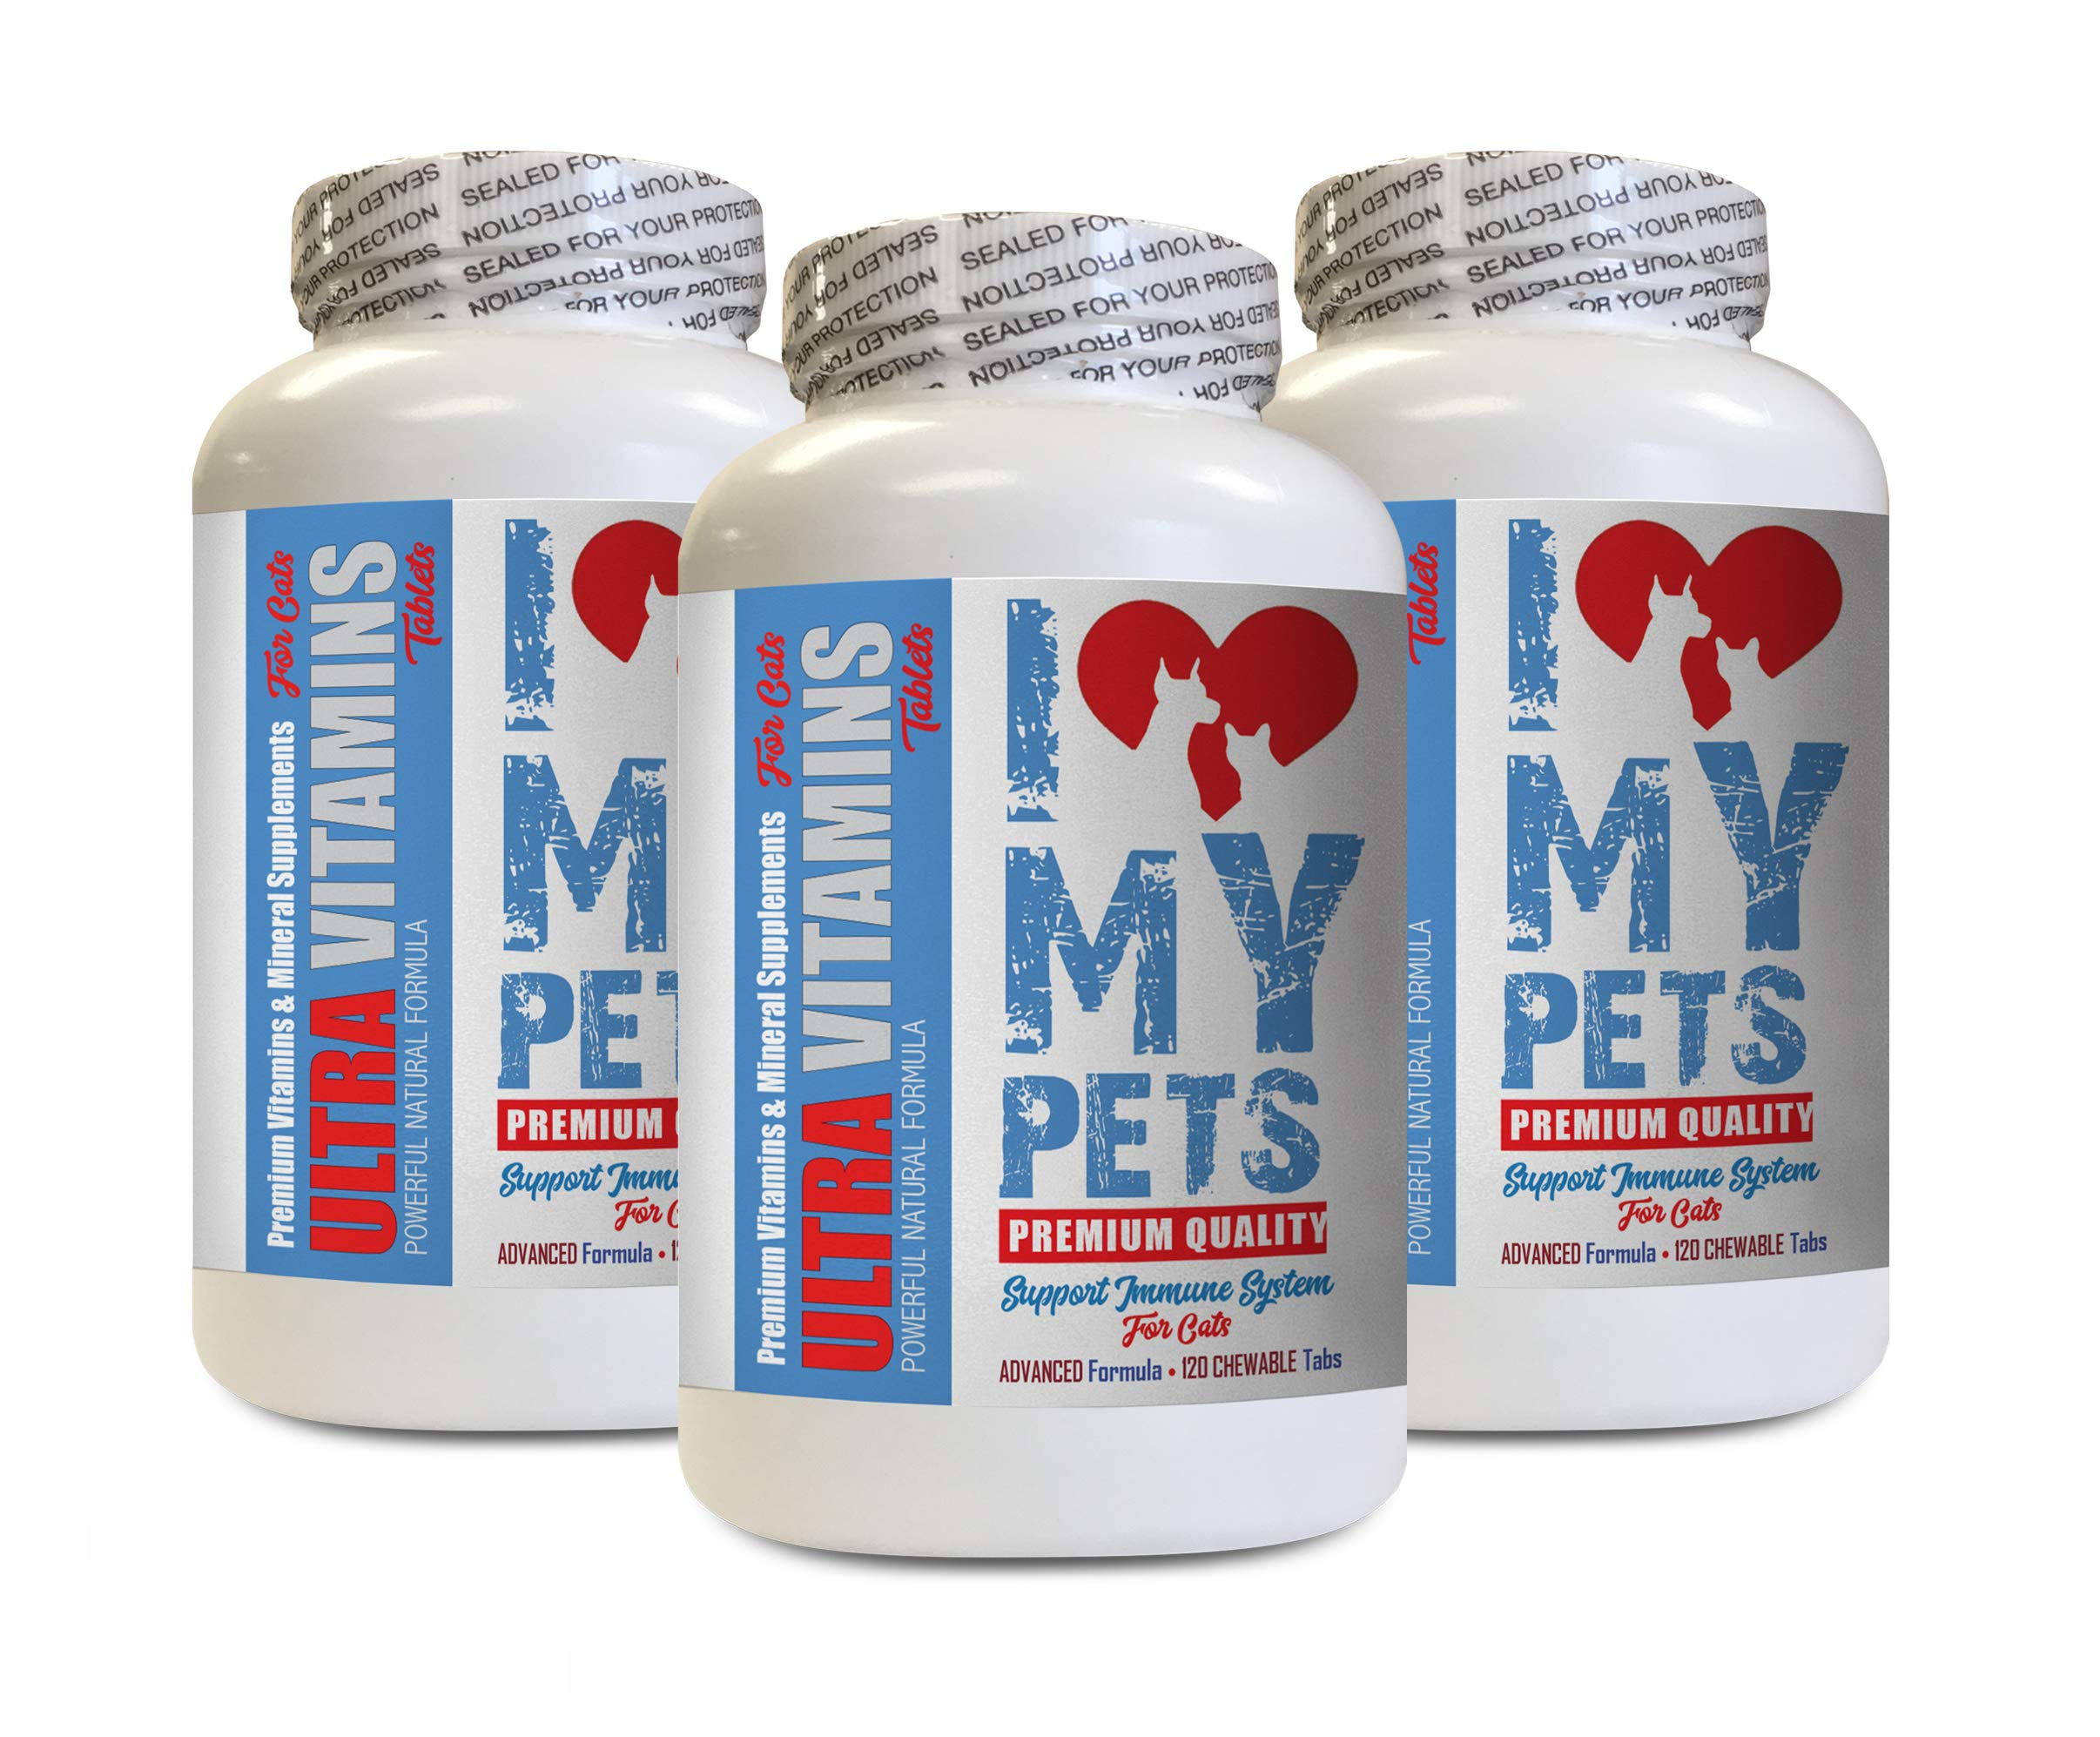 I LOVE MY PETS LLC Senior cat Treat - Ultra Vitamins - CAT Health - Mineral Boost - cat Vitamins for Liver - 360 Treats (3 Bottles) by I LOVE MY PETS LLC